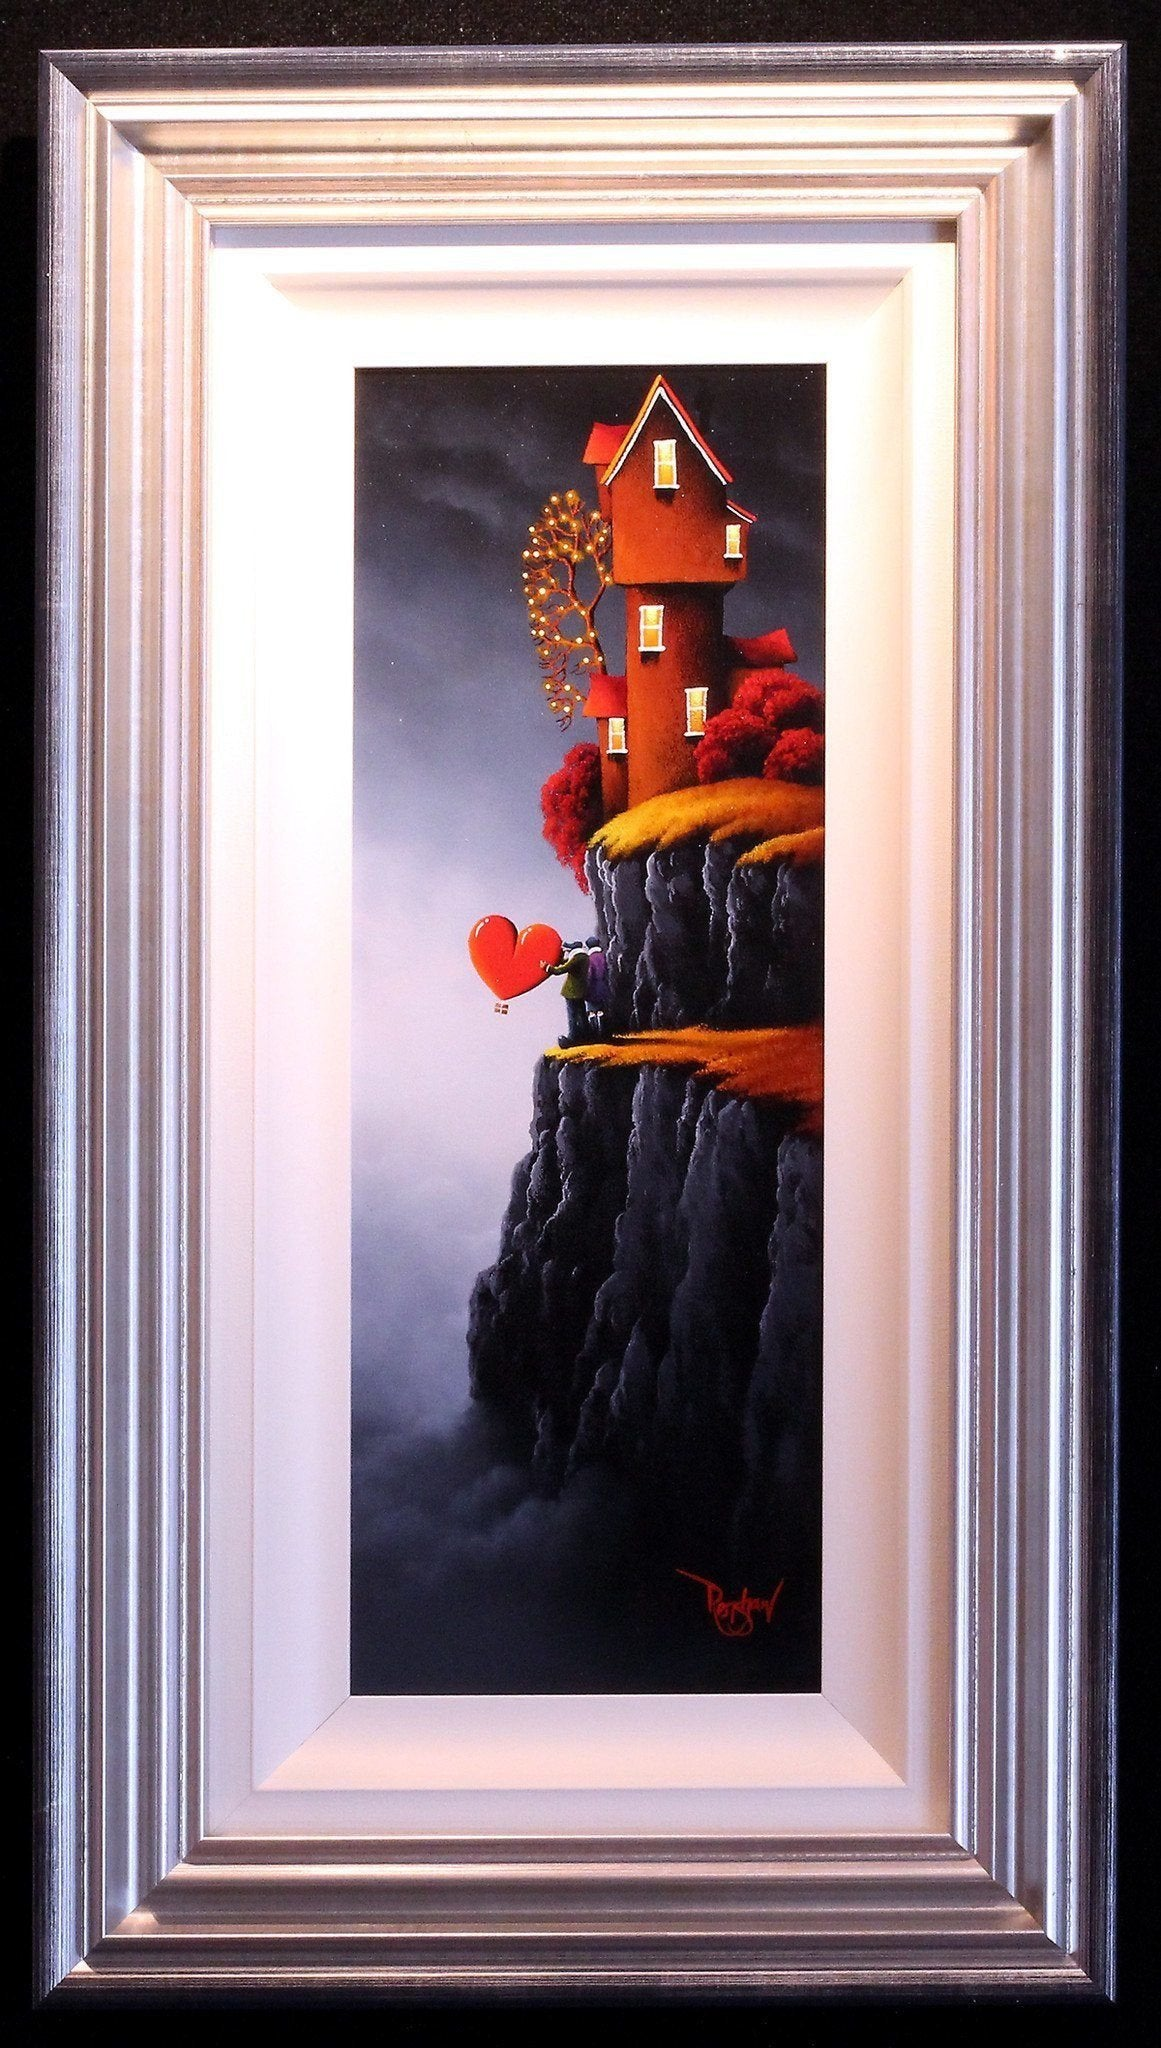 With Love - SOLD David Renshaw